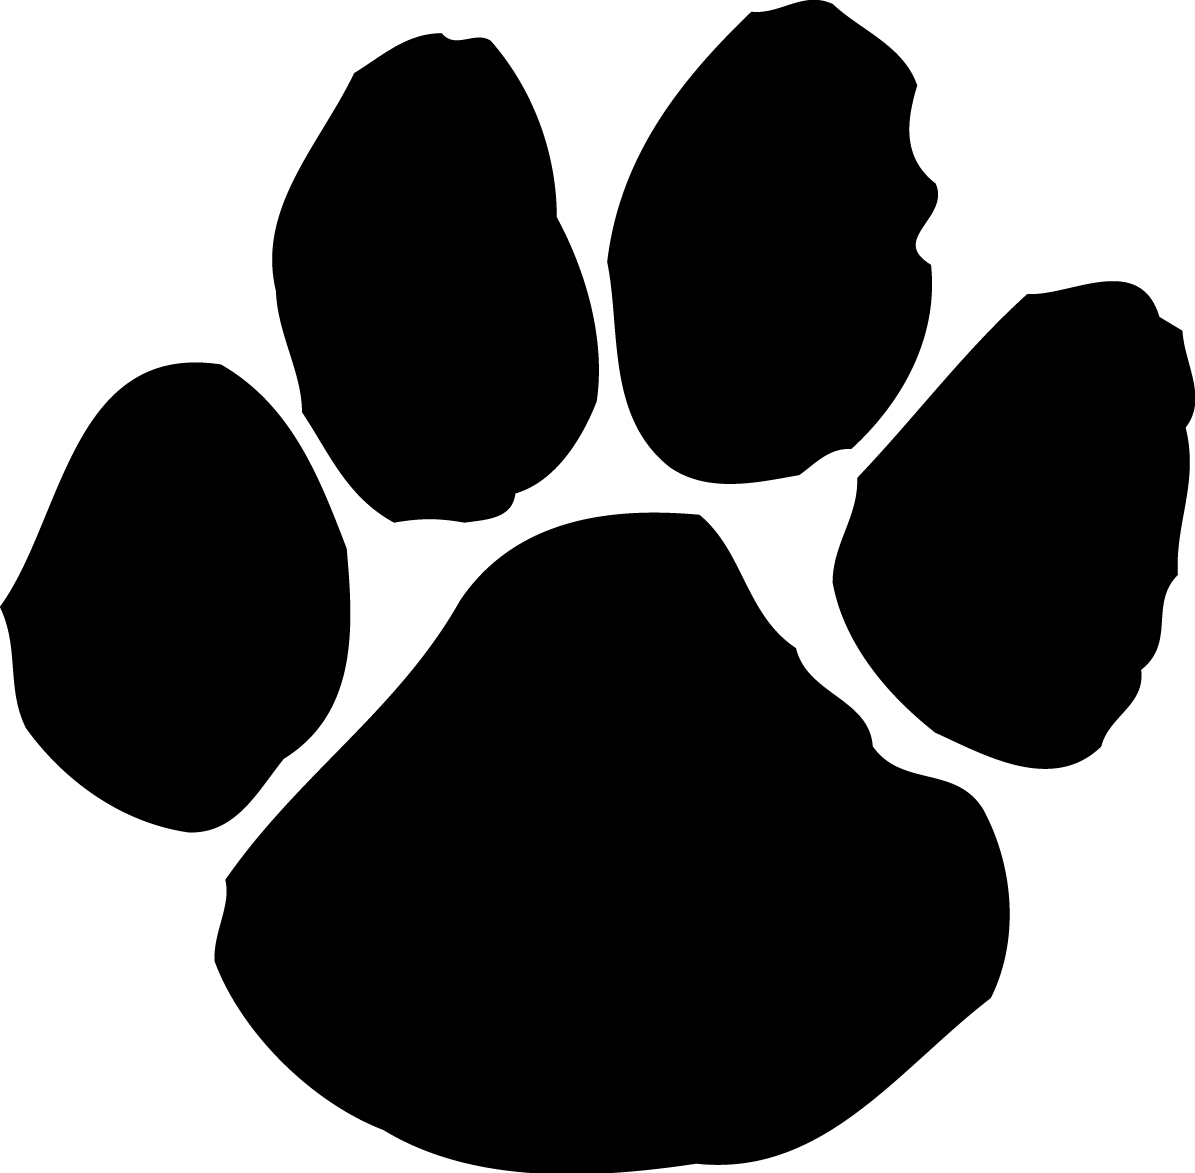 Paw print clipart jpeg image royalty free stock Paw Print Clipart & Paw Print Clip Art Images - ClipartALL.com image royalty free stock